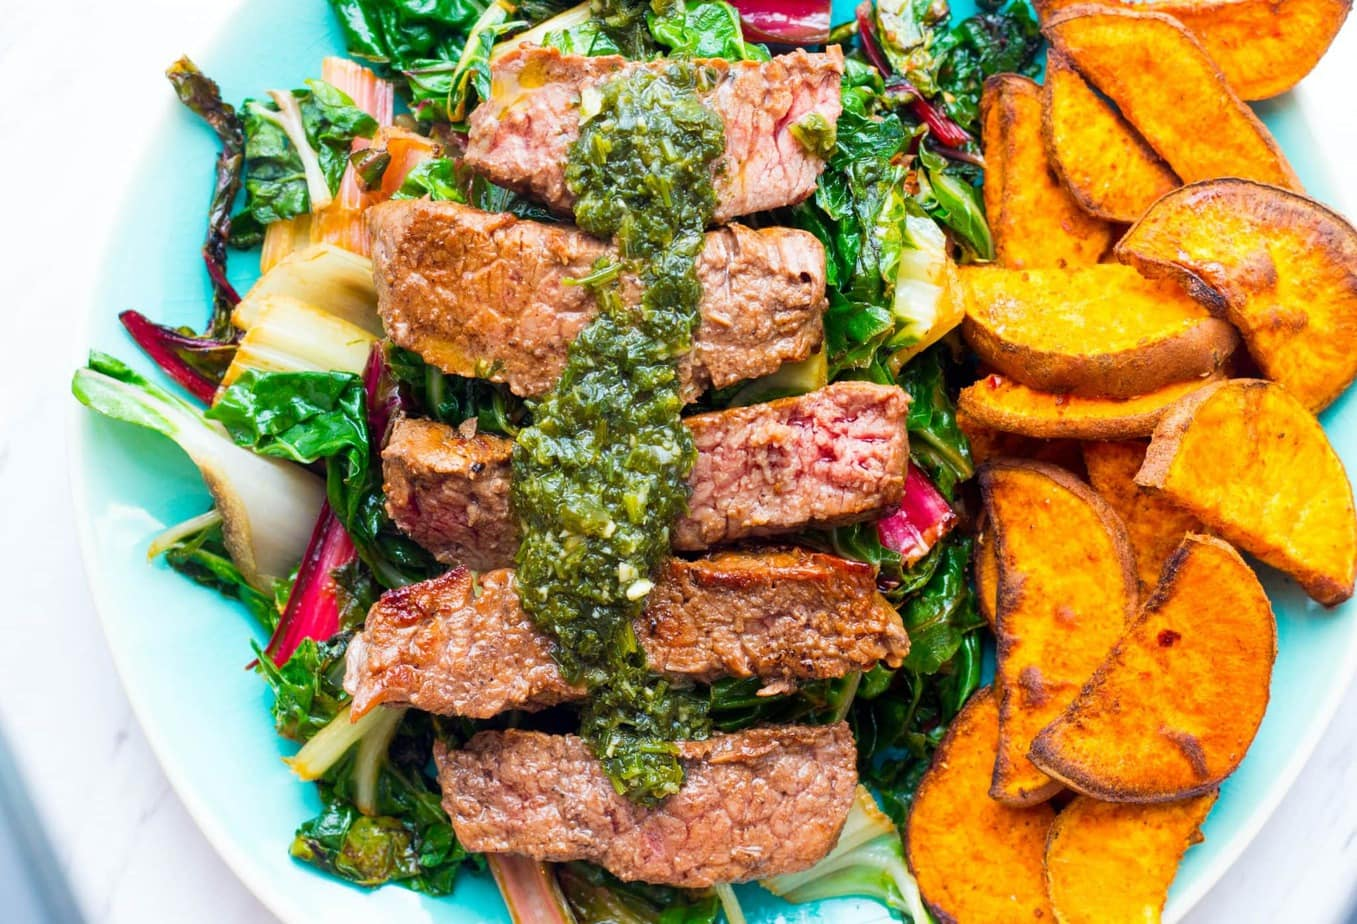 Sun Basket Steaks with chimichurri and harissa-roasted sweet potatoes